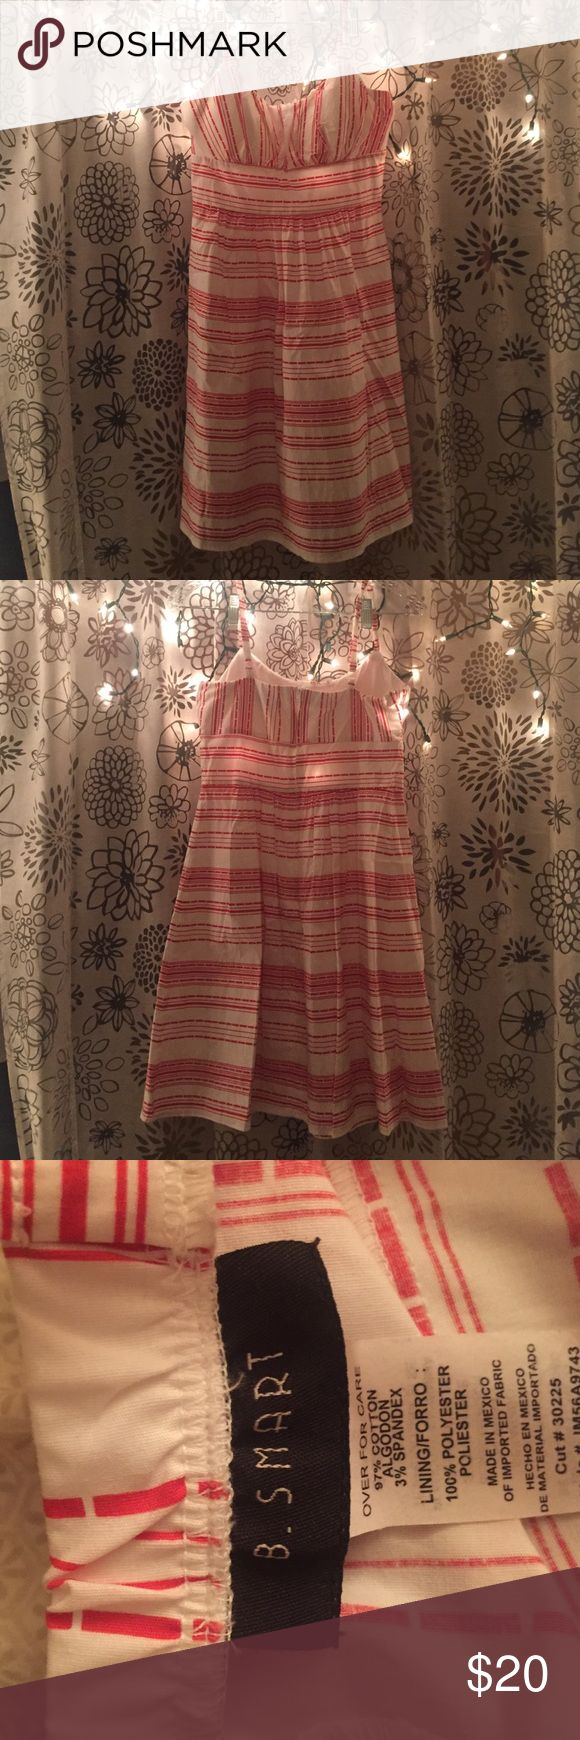 White/orange striped dress Size small white and orange striped dress. Never worn. B. Smart Dresses Midi